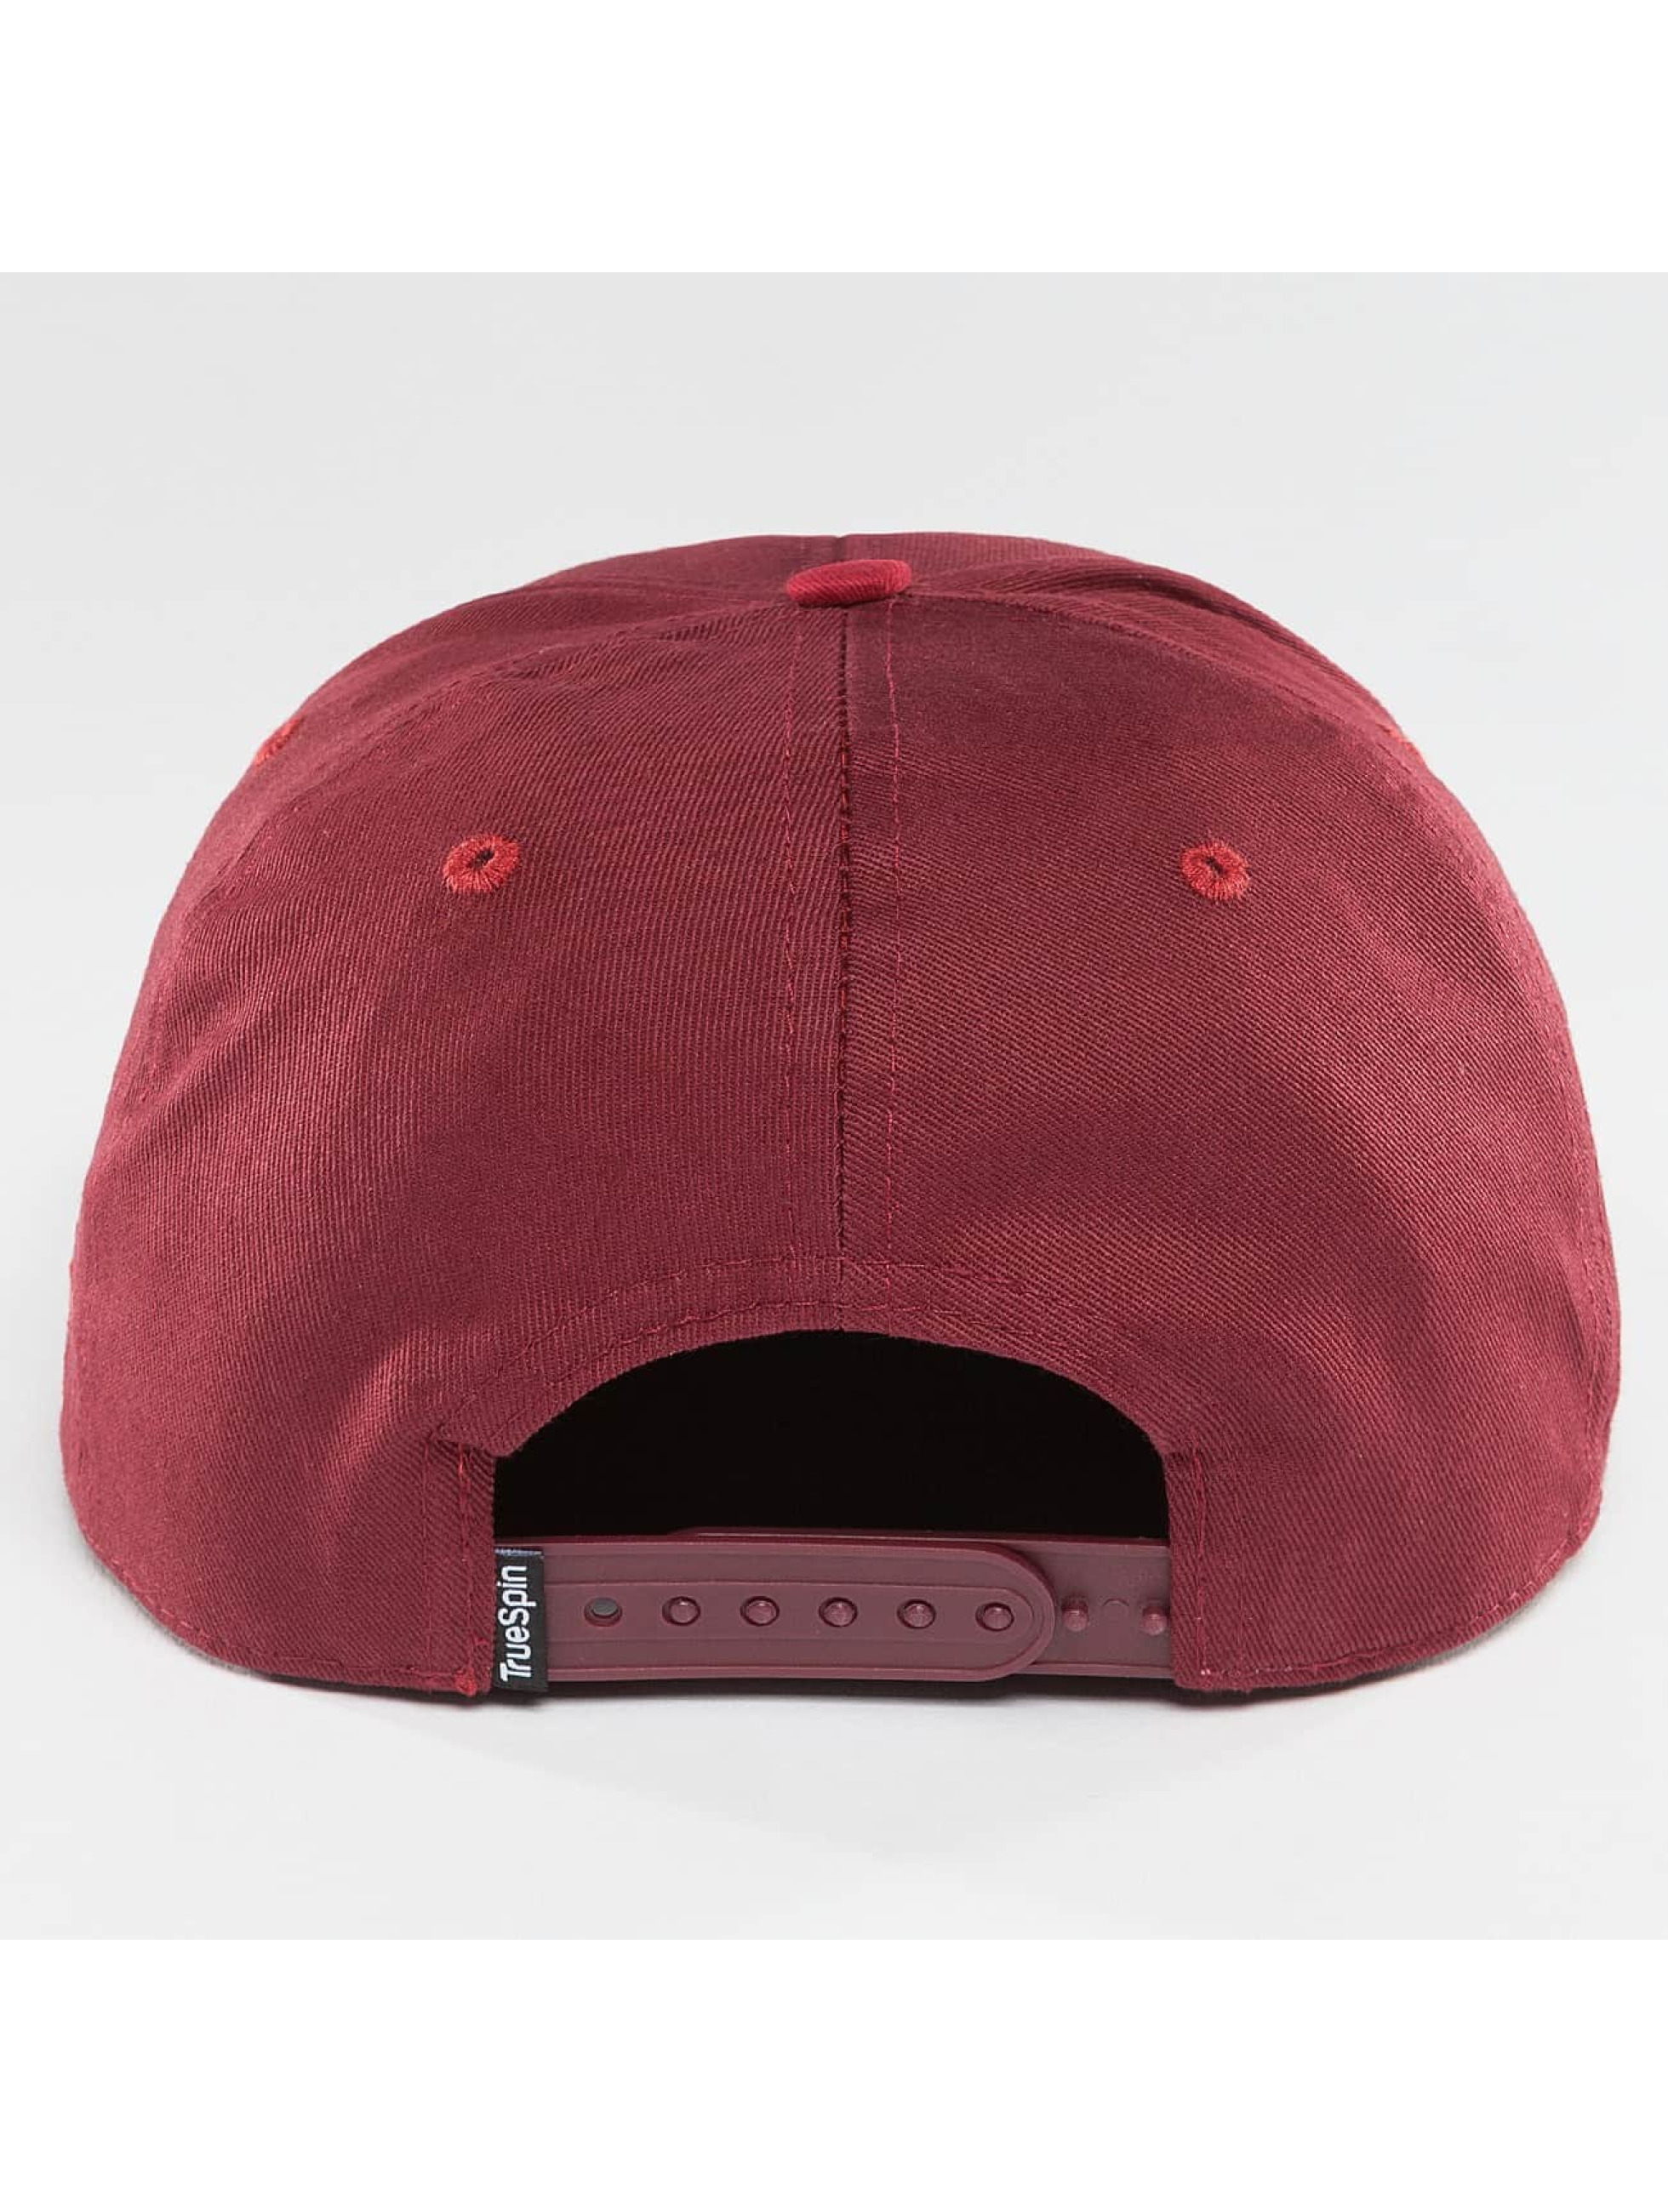 TrueSpin Casquette Snapback & Strapback Shorty MYOB rouge